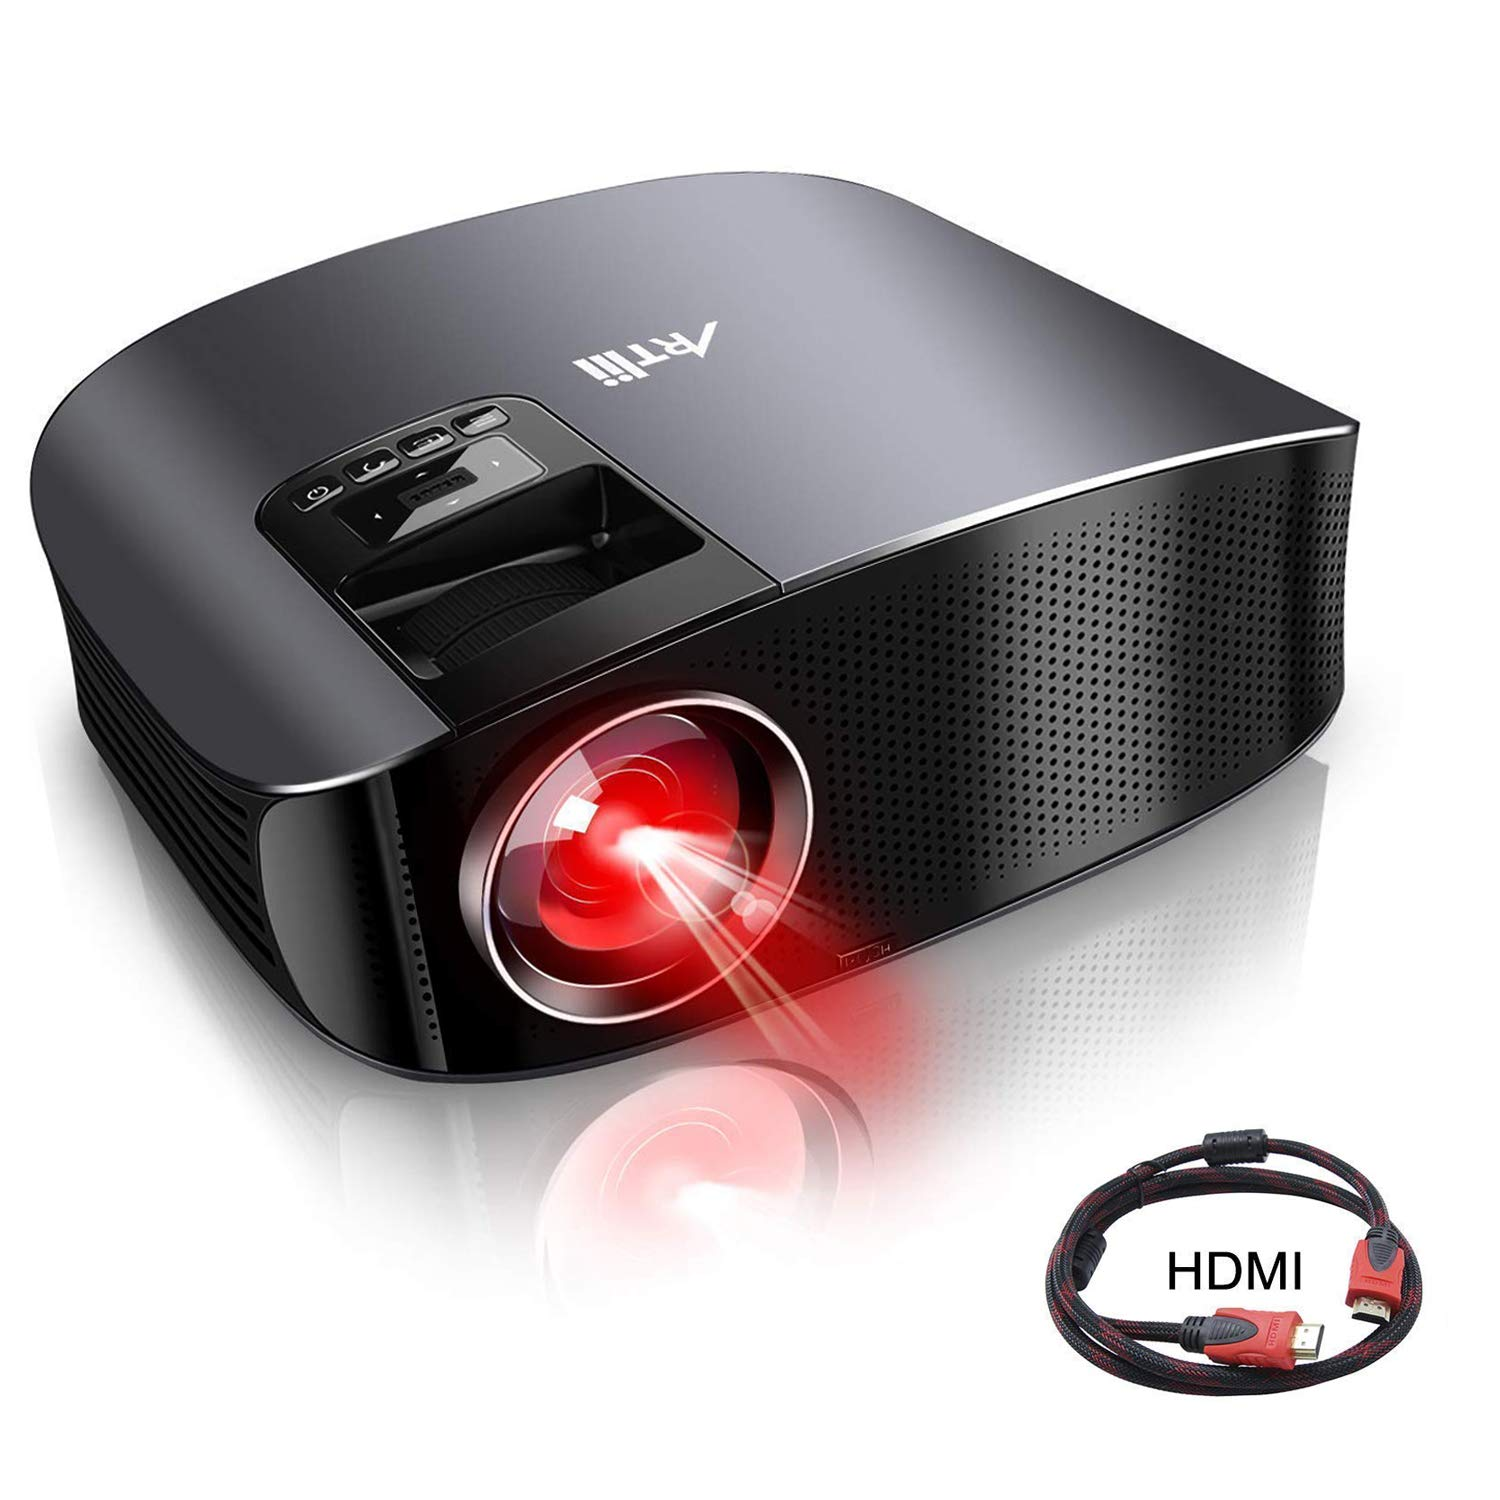 Artlii Full HD Home Theater Projector